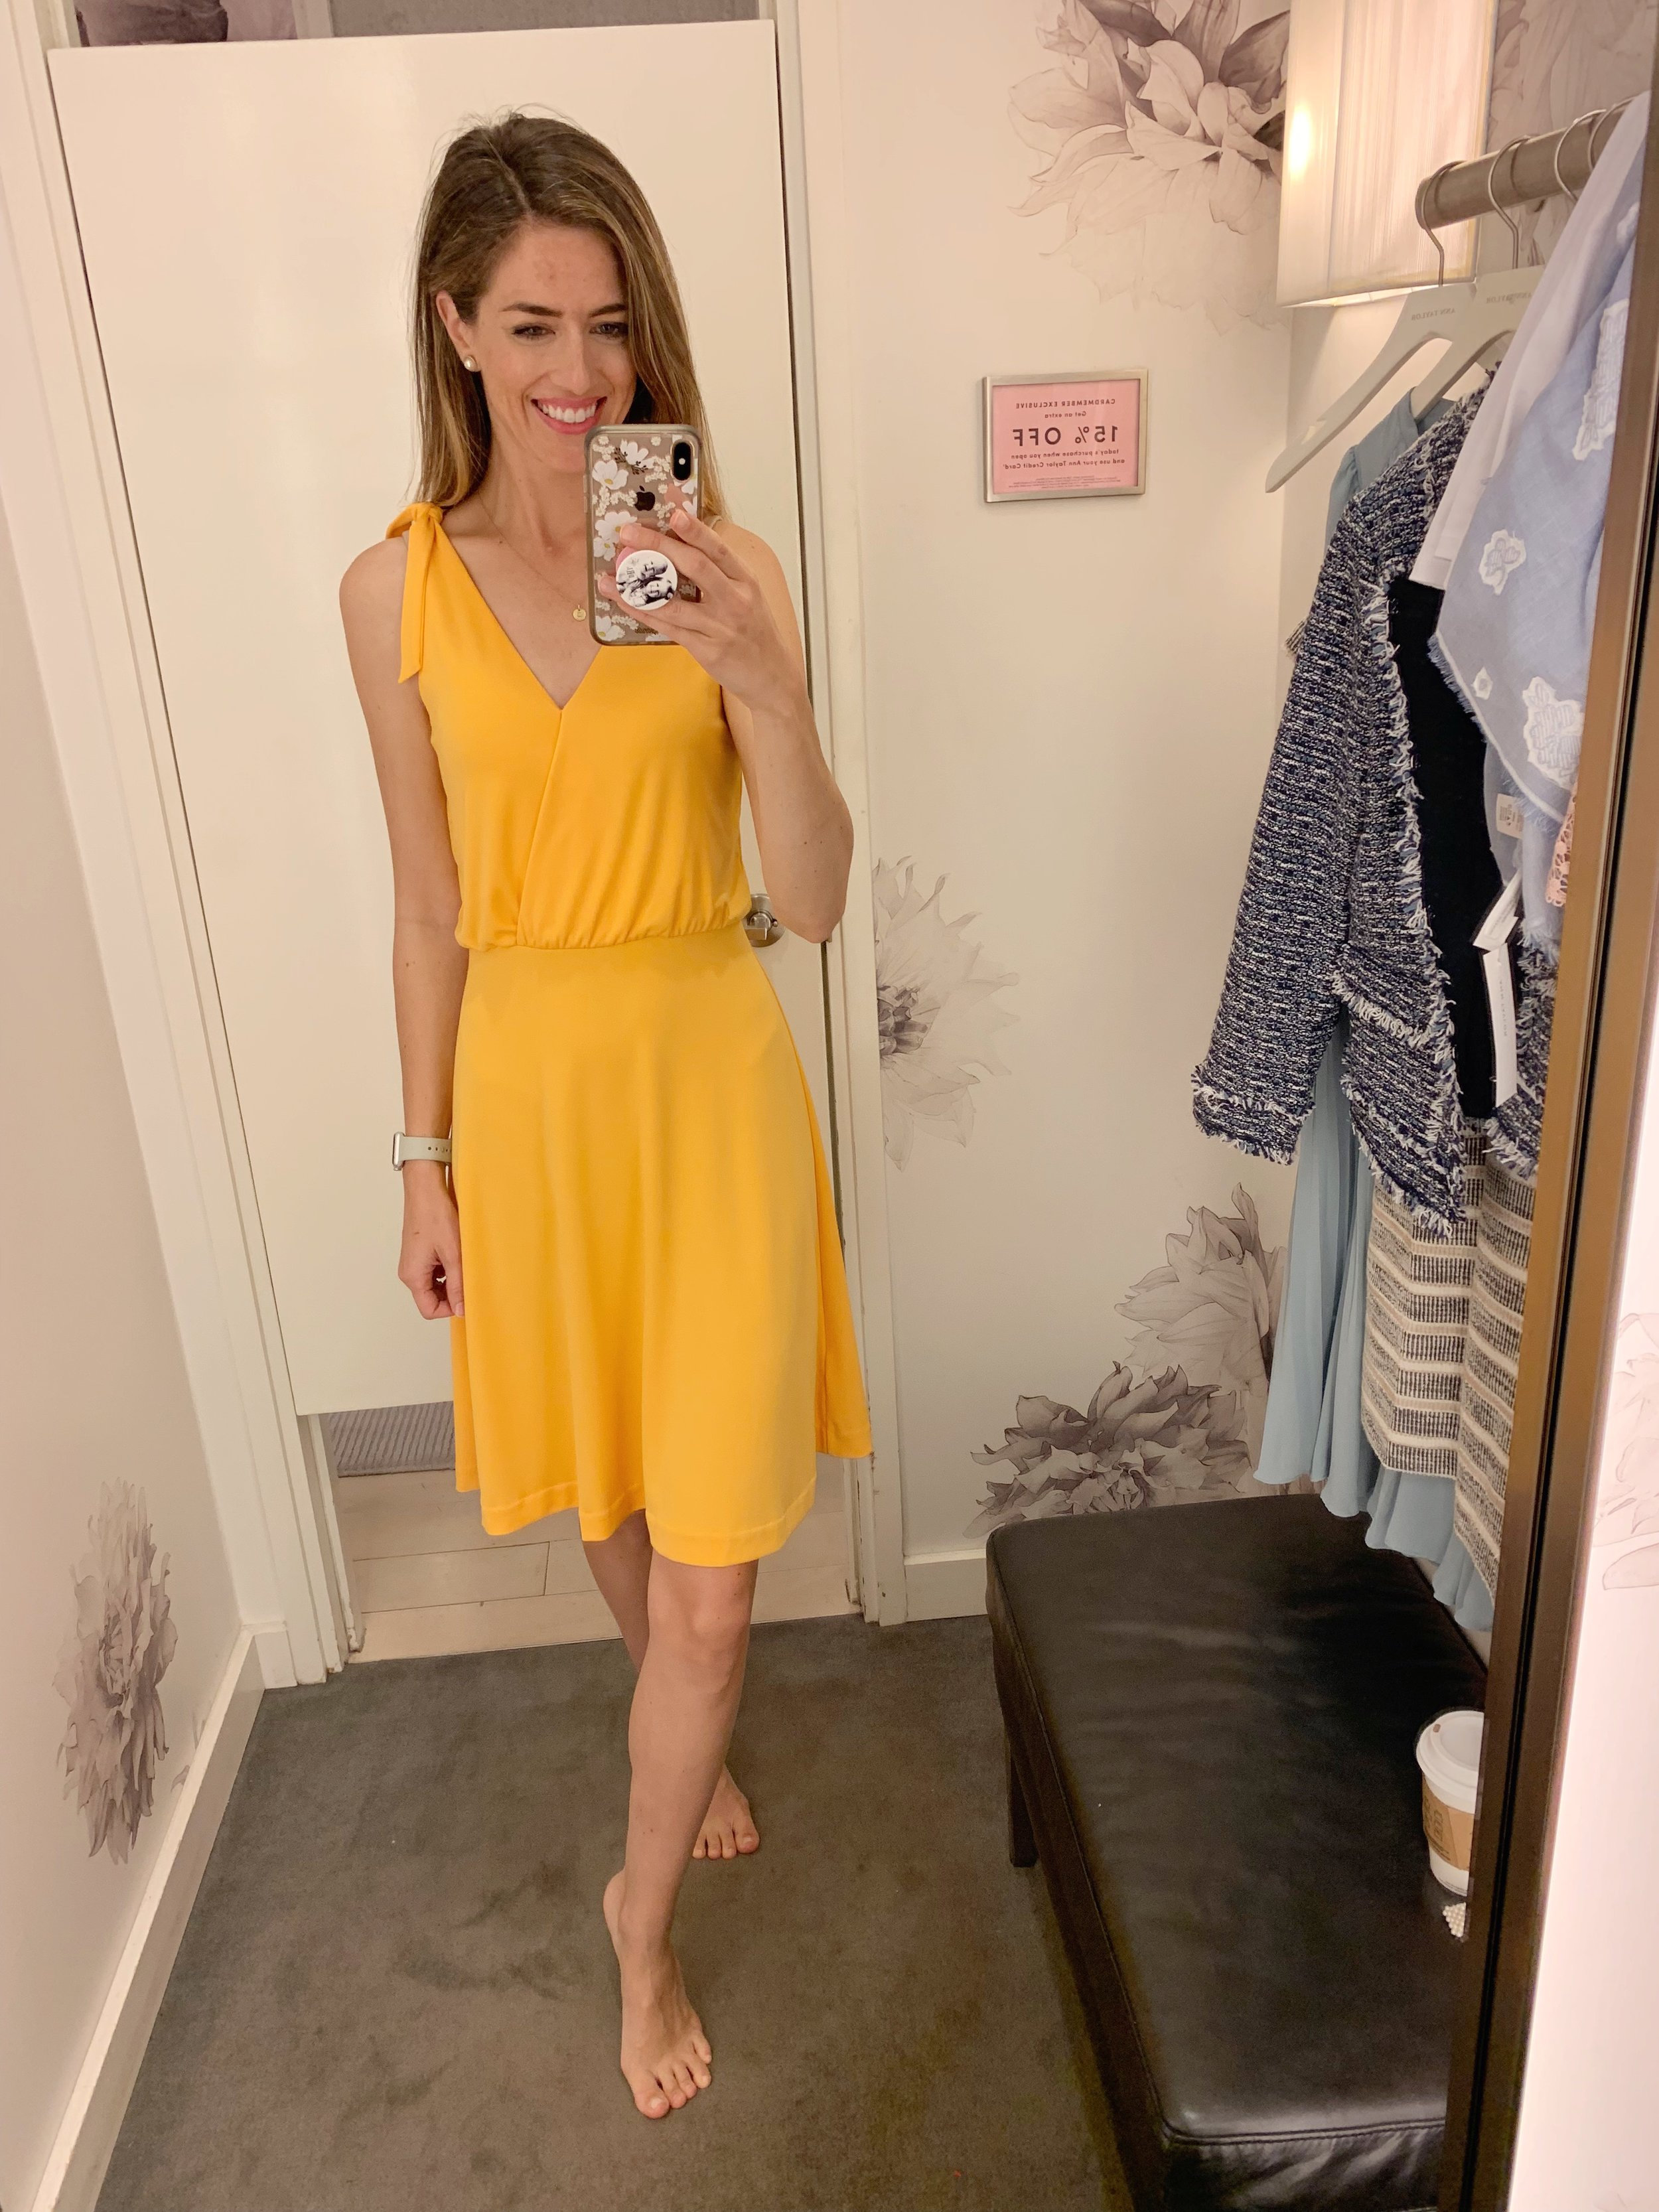 I thought this golden yellow color was so pretty and it was super comfy on. It's certainly not a color I have in my closet and it could be a great late summer/early fall transitional piece with a denim jacket. I would suggest wearing a slip underneath it so you don't see underwear lines. Pair it with tortoise shell earrings or a pretty scarf and you have a great outfit. Sale price is $110 plus the additional 50%/60%/70% off depending on how many items you purchase (70% off is $33)